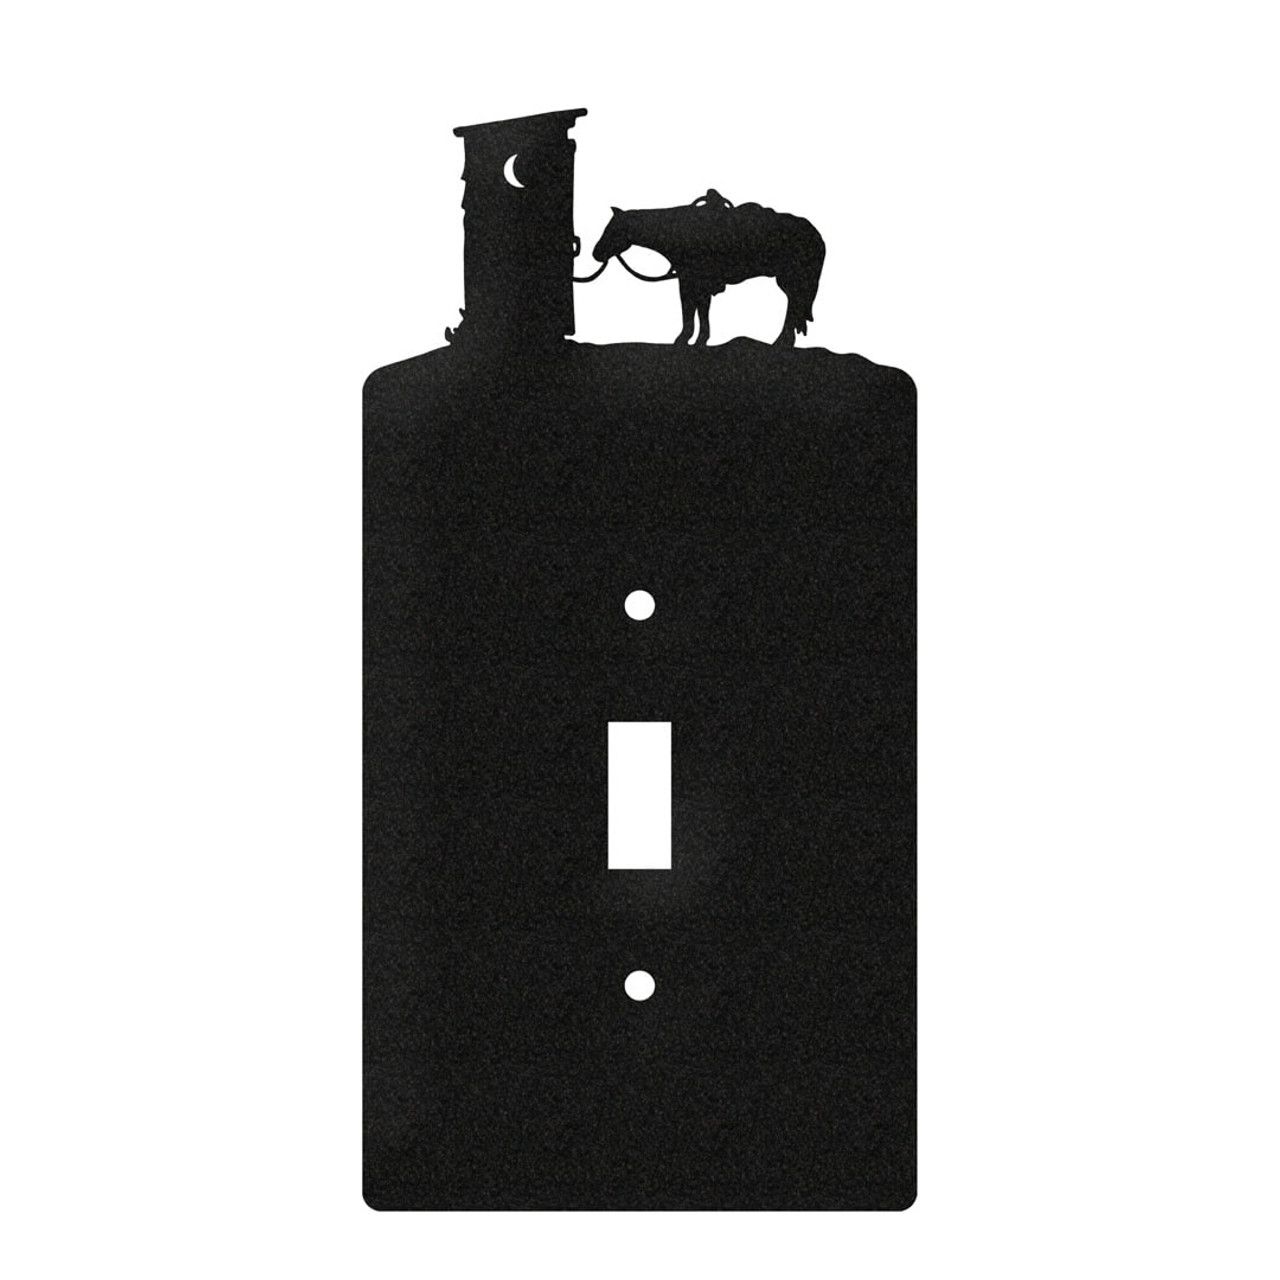 SWEN Products GEORGIA BULLDOGS Light Switch Plate Covers